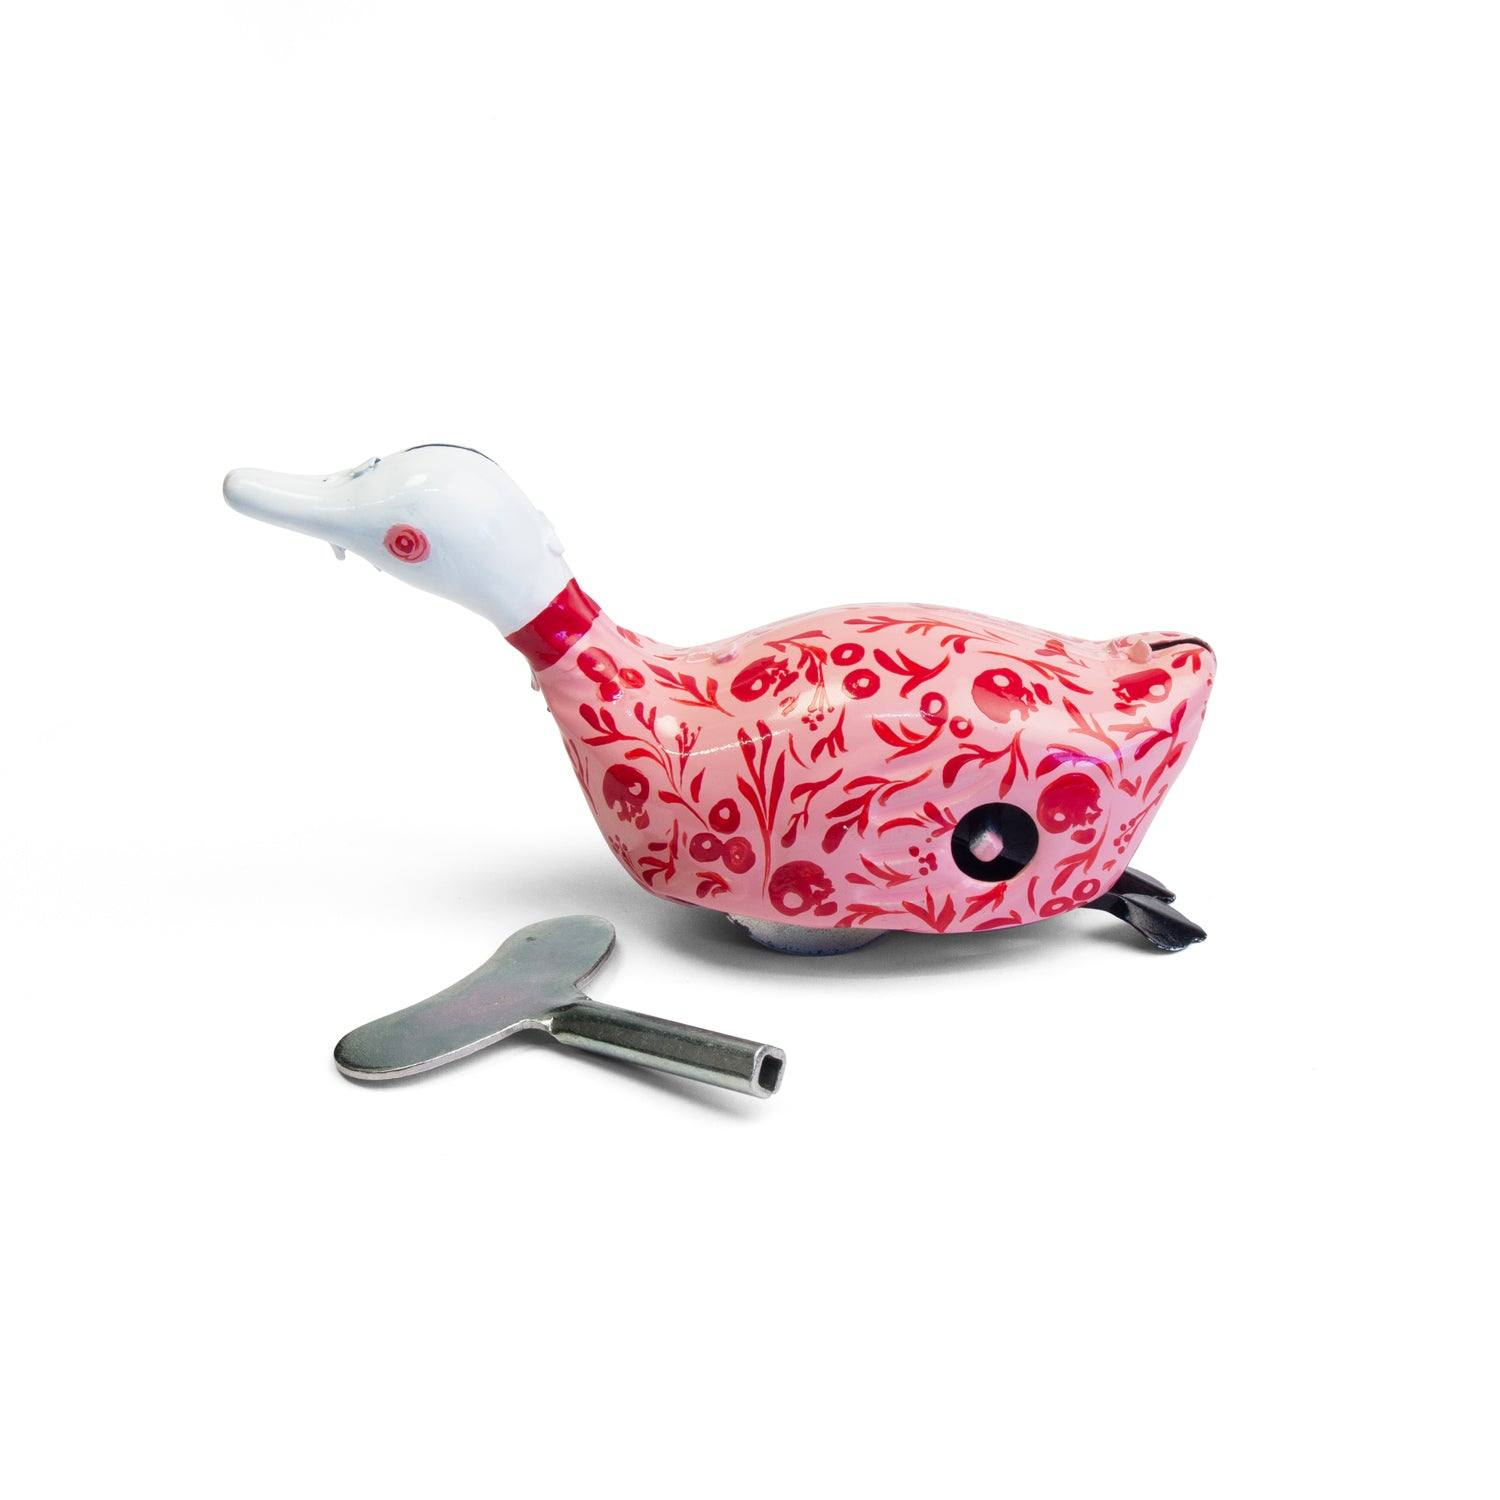 Tinplate wind-up duck